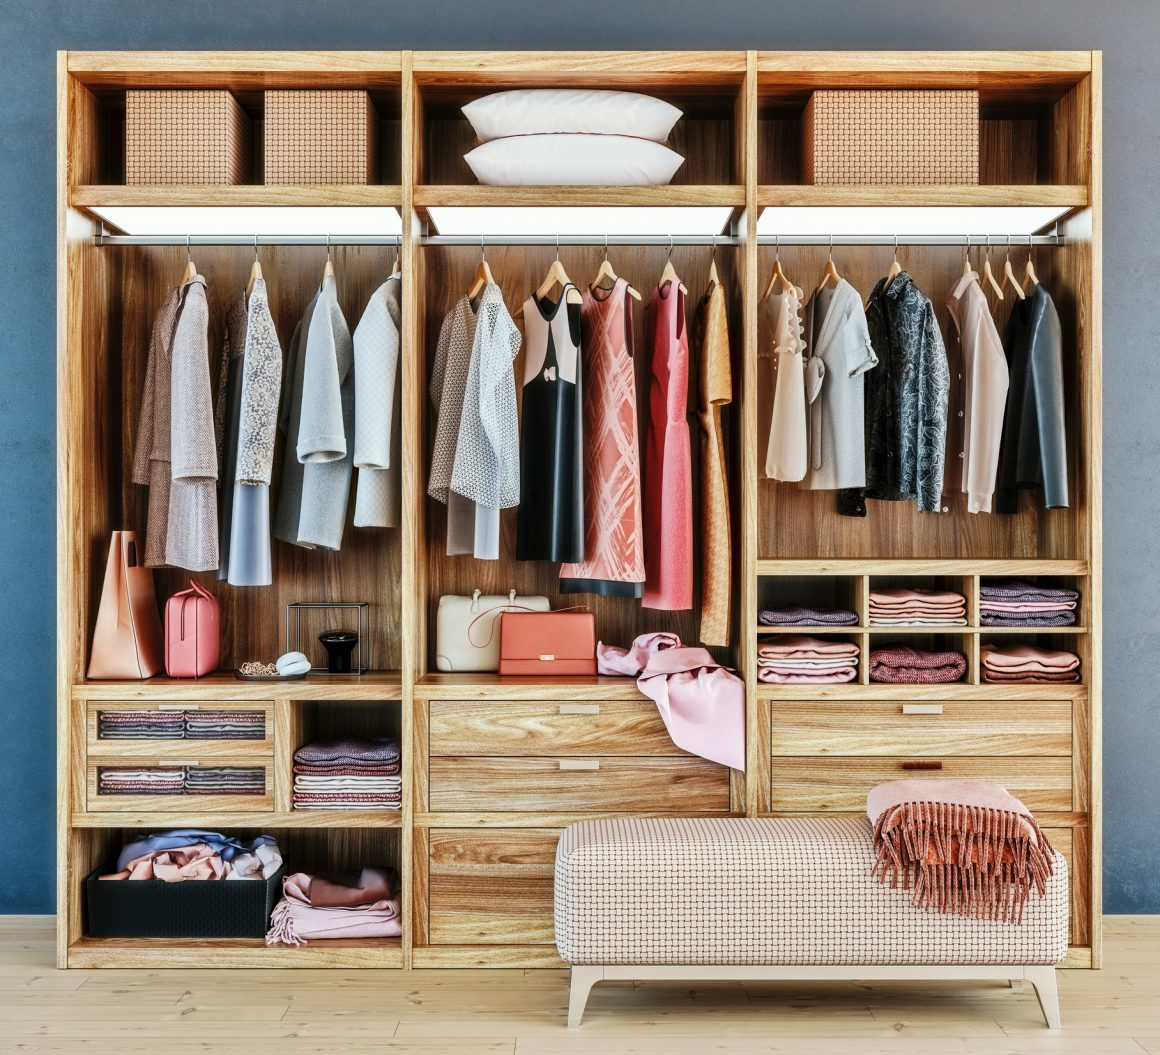 modern wooden wardrobe with clothes hanging on rail in walk in closet design interior, 3d rendering